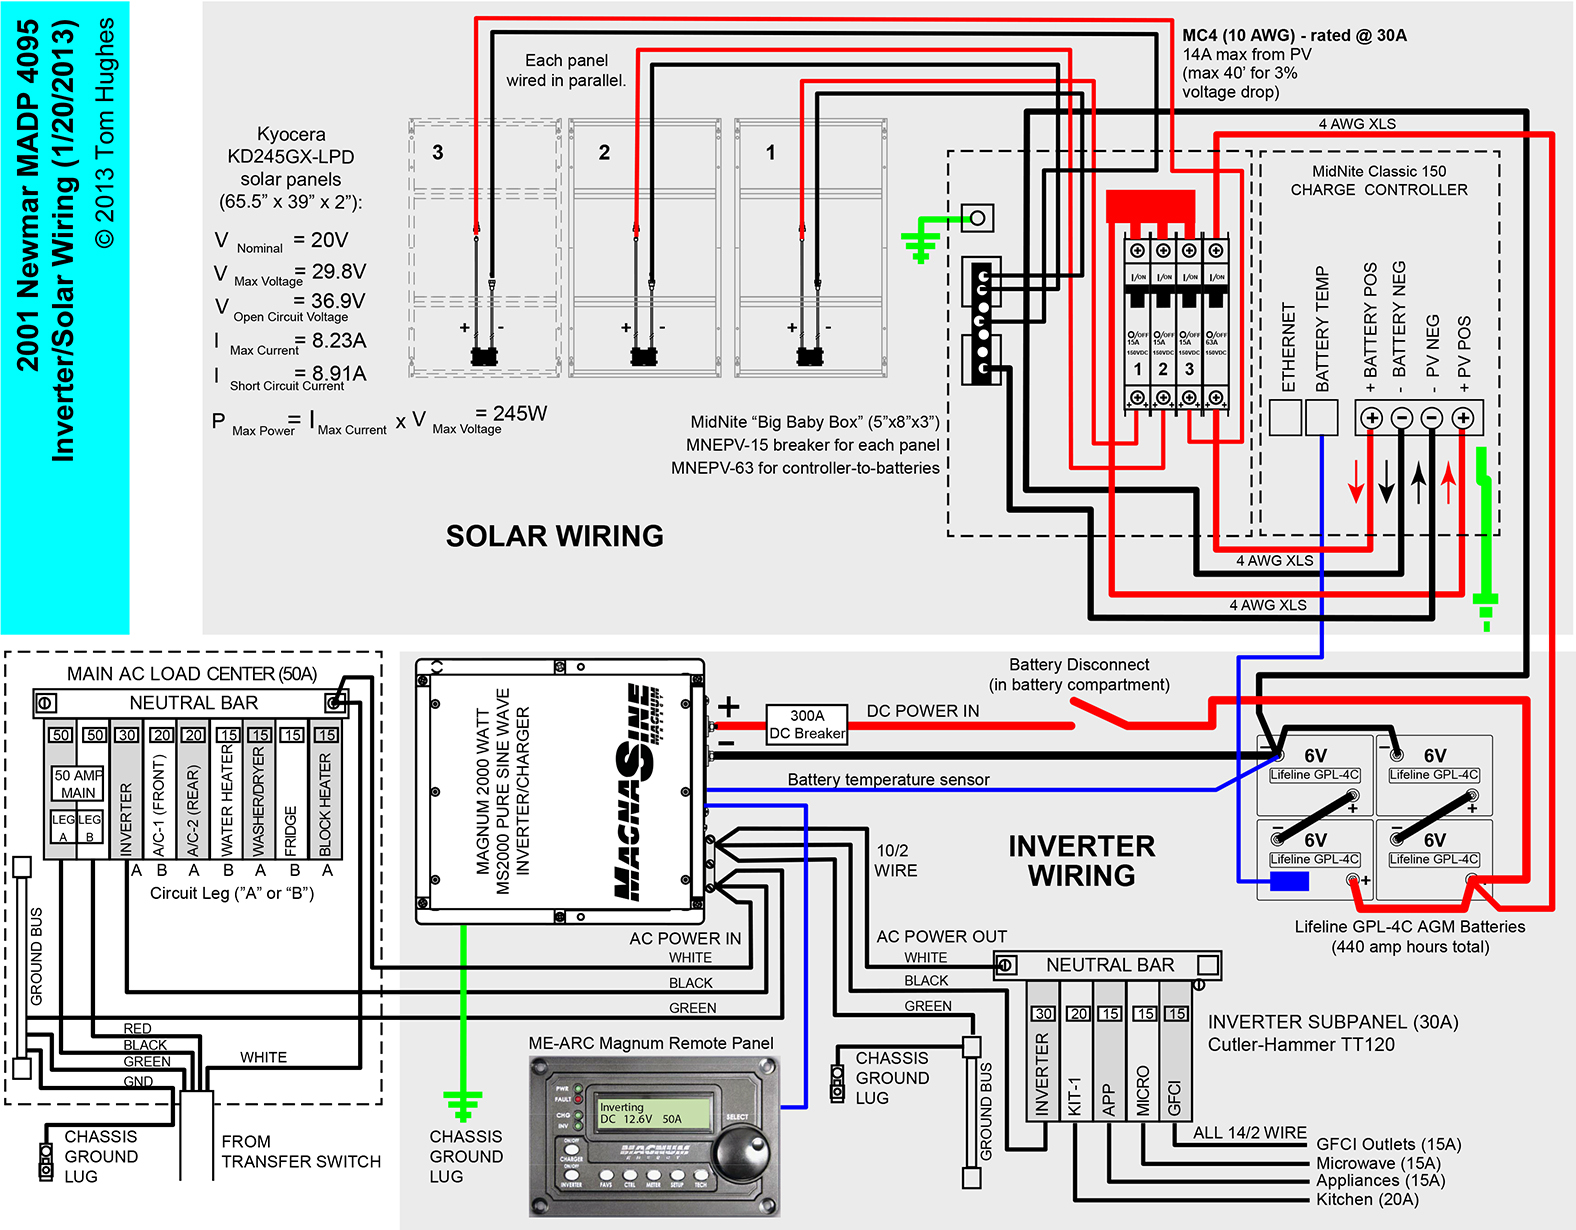 ms2000_newmar_inverter_wiring_01_20_2013 rv inverter wiring diagram rv wiring diagrams instruction c max wiring diagram at mifinder.co